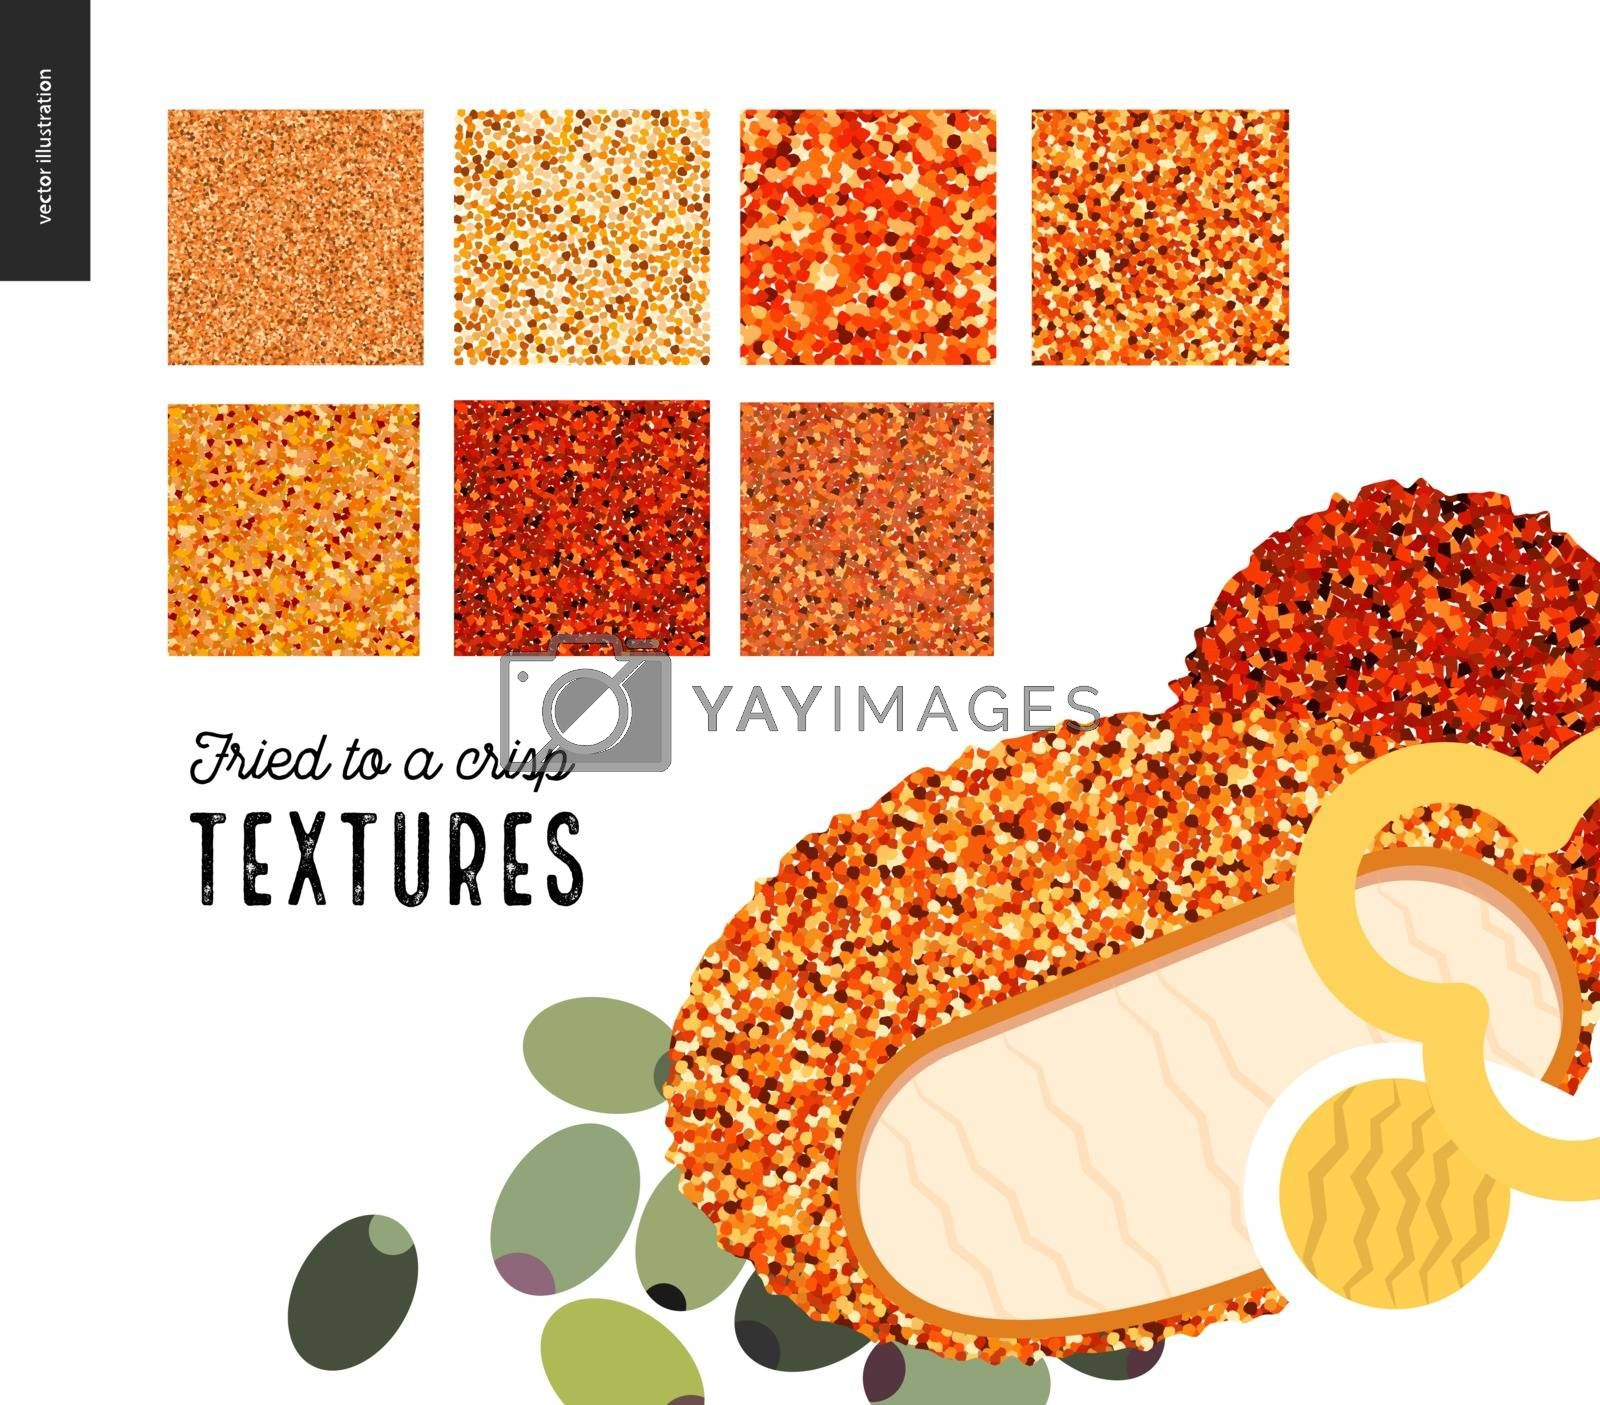 Meat fried texture patterns. Flat vector cartoon illustrated seamless patterns of fried meat skin with a usage example of prepared food.